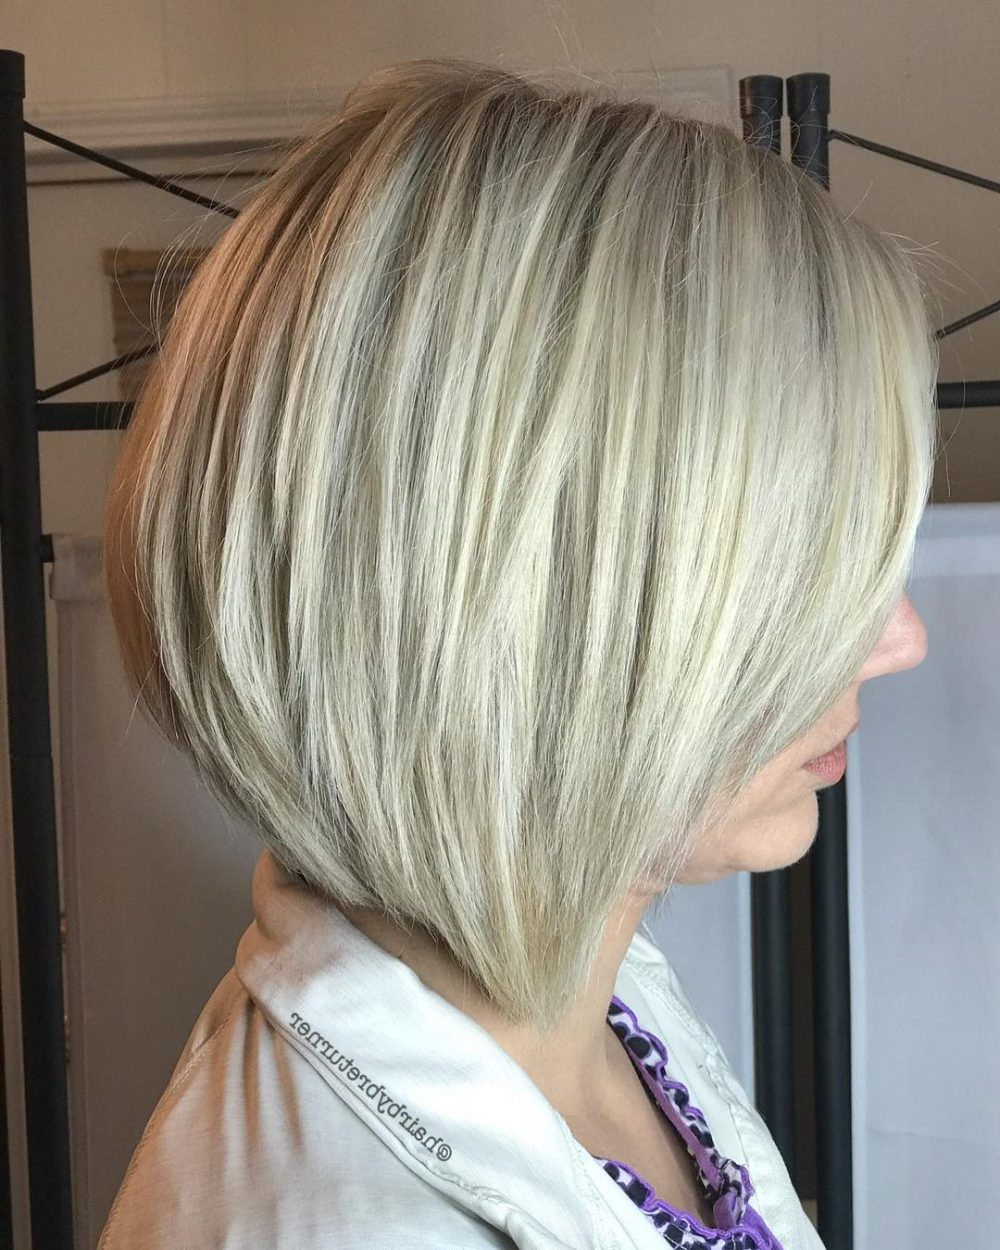 42 Sexiest Short Hairstyles For Women Over 40 In 2018 With Regard To Short Shoulder Length Hairstyles For Women (View 18 of 25)